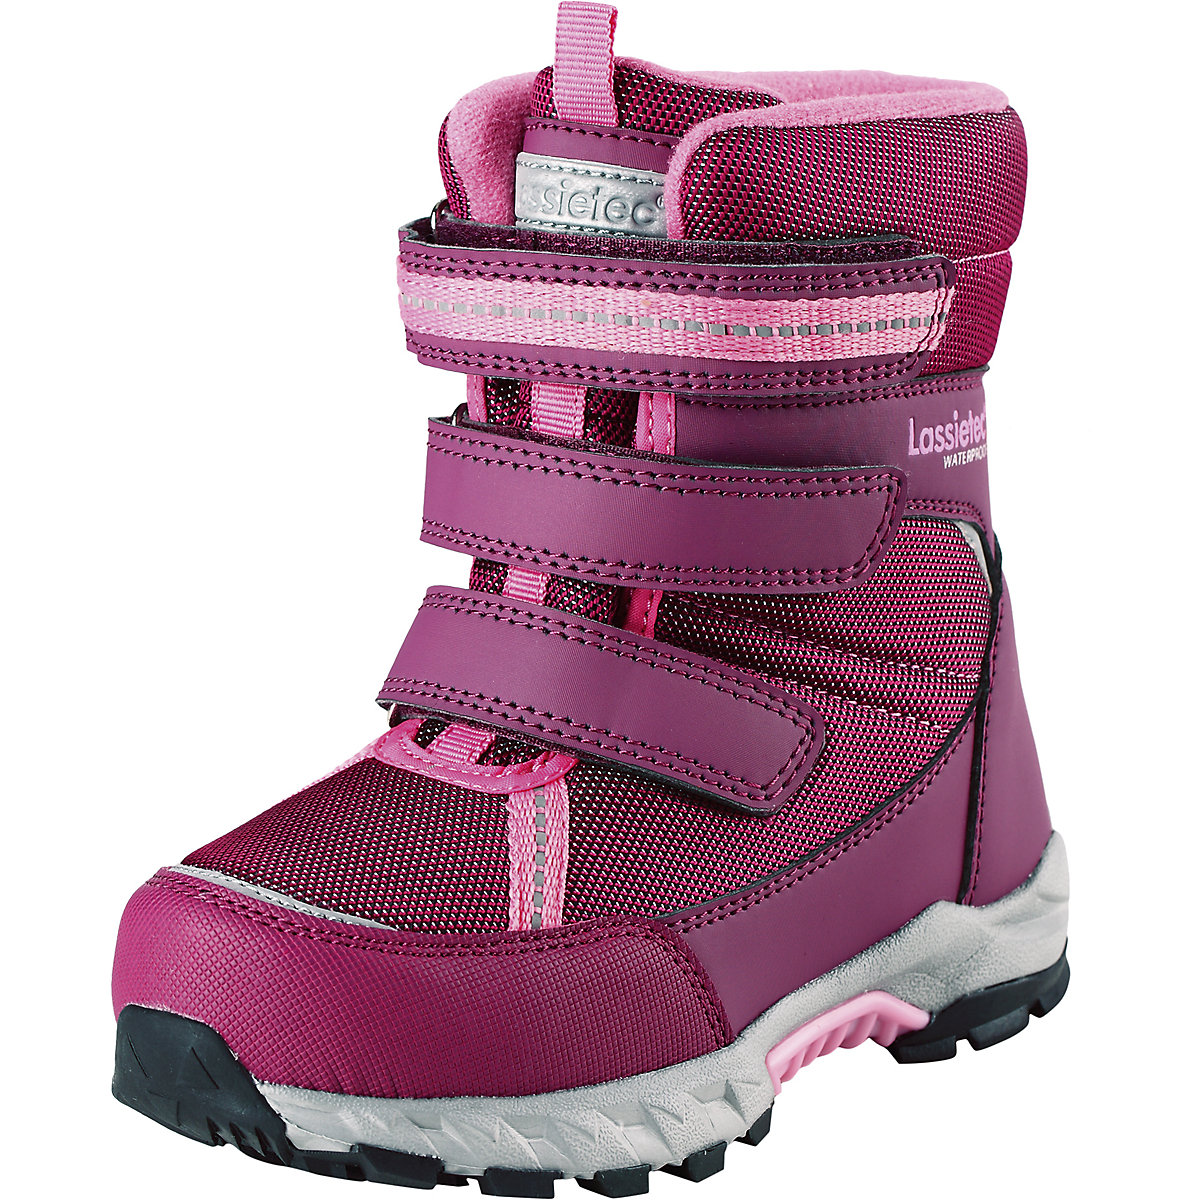 Boots LASSIE for girls 8622674 Valenki Uggi Winter shoes Children Kids